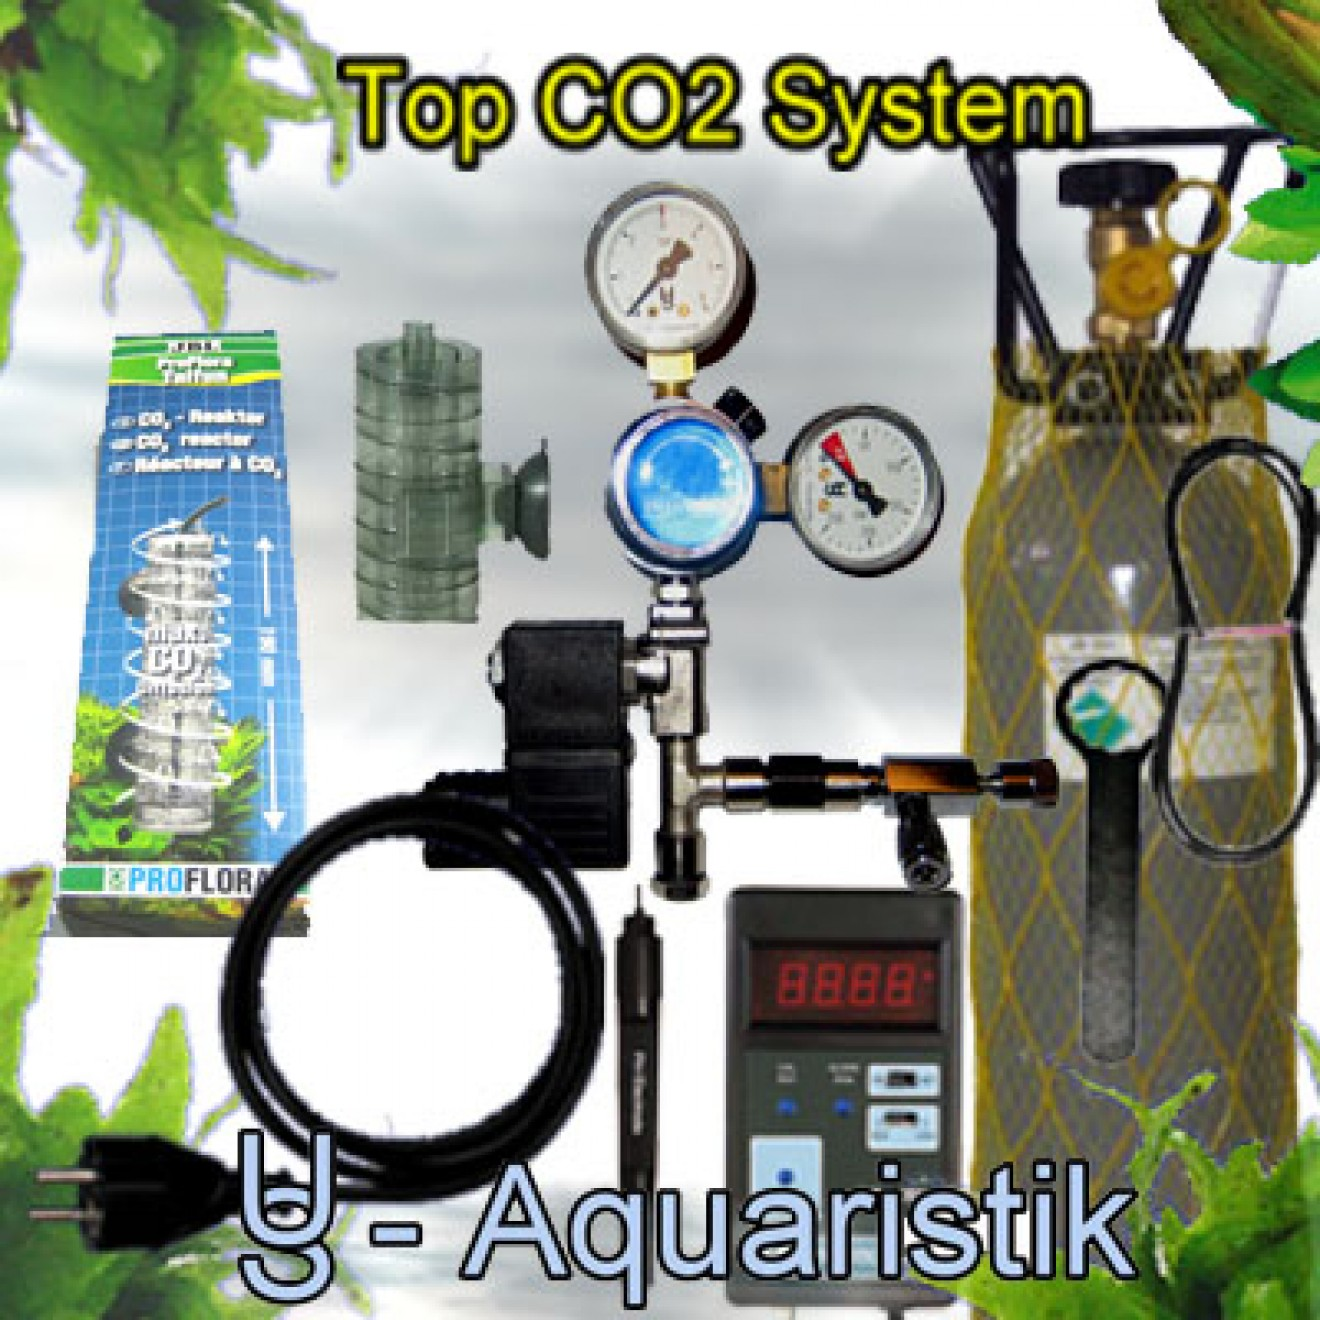 co2 anlage 450l incl nachtabschaltung 2kg vario us aquaristik. Black Bedroom Furniture Sets. Home Design Ideas